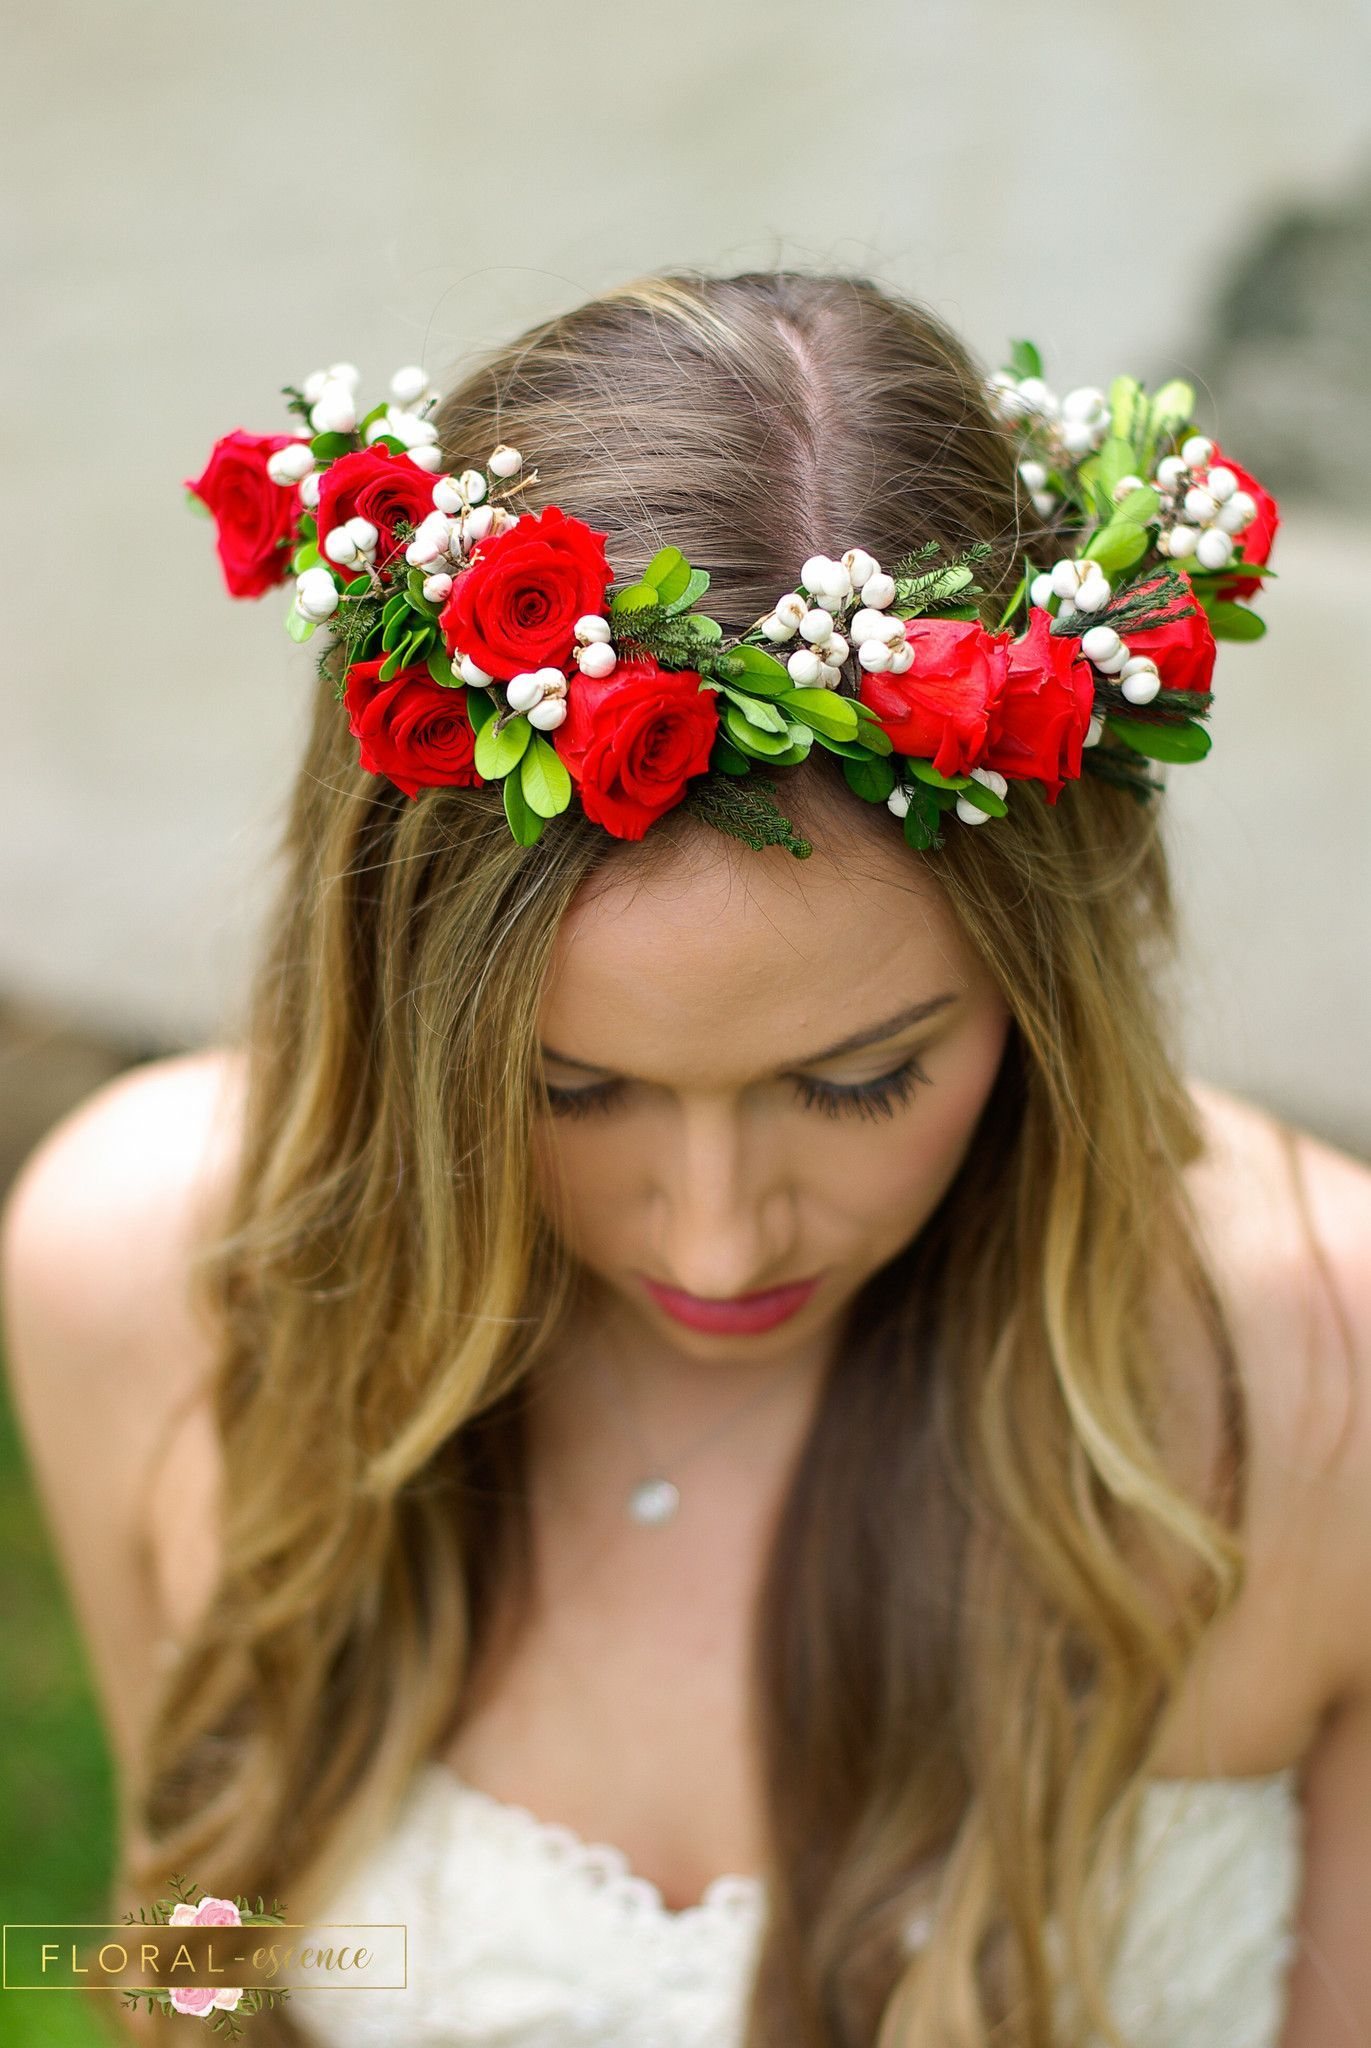 Gorgeous red rose flower crown with white tallow berries is perfect gorgeous red rose flower crown with white tallow berries is perfect in classic elegance this flower crown will last for years not a couple of hours as with izmirmasajfo